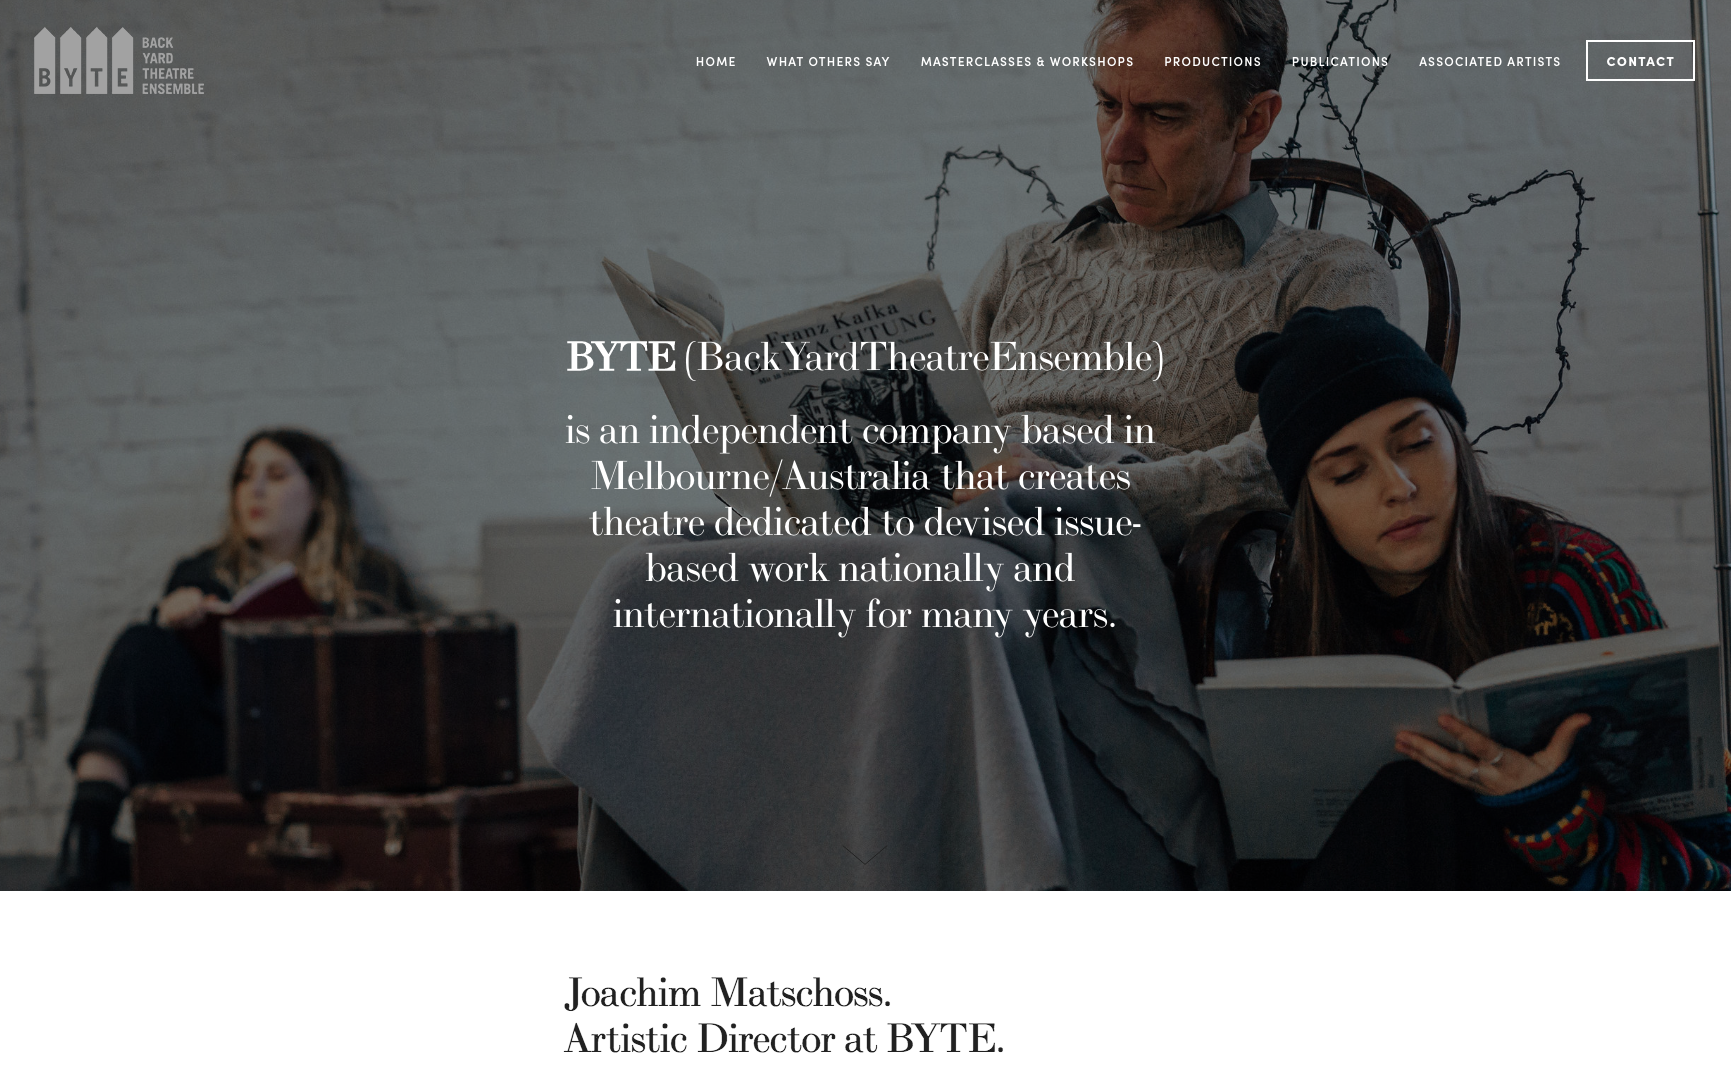 VISIT BYTE ENSEMBLE